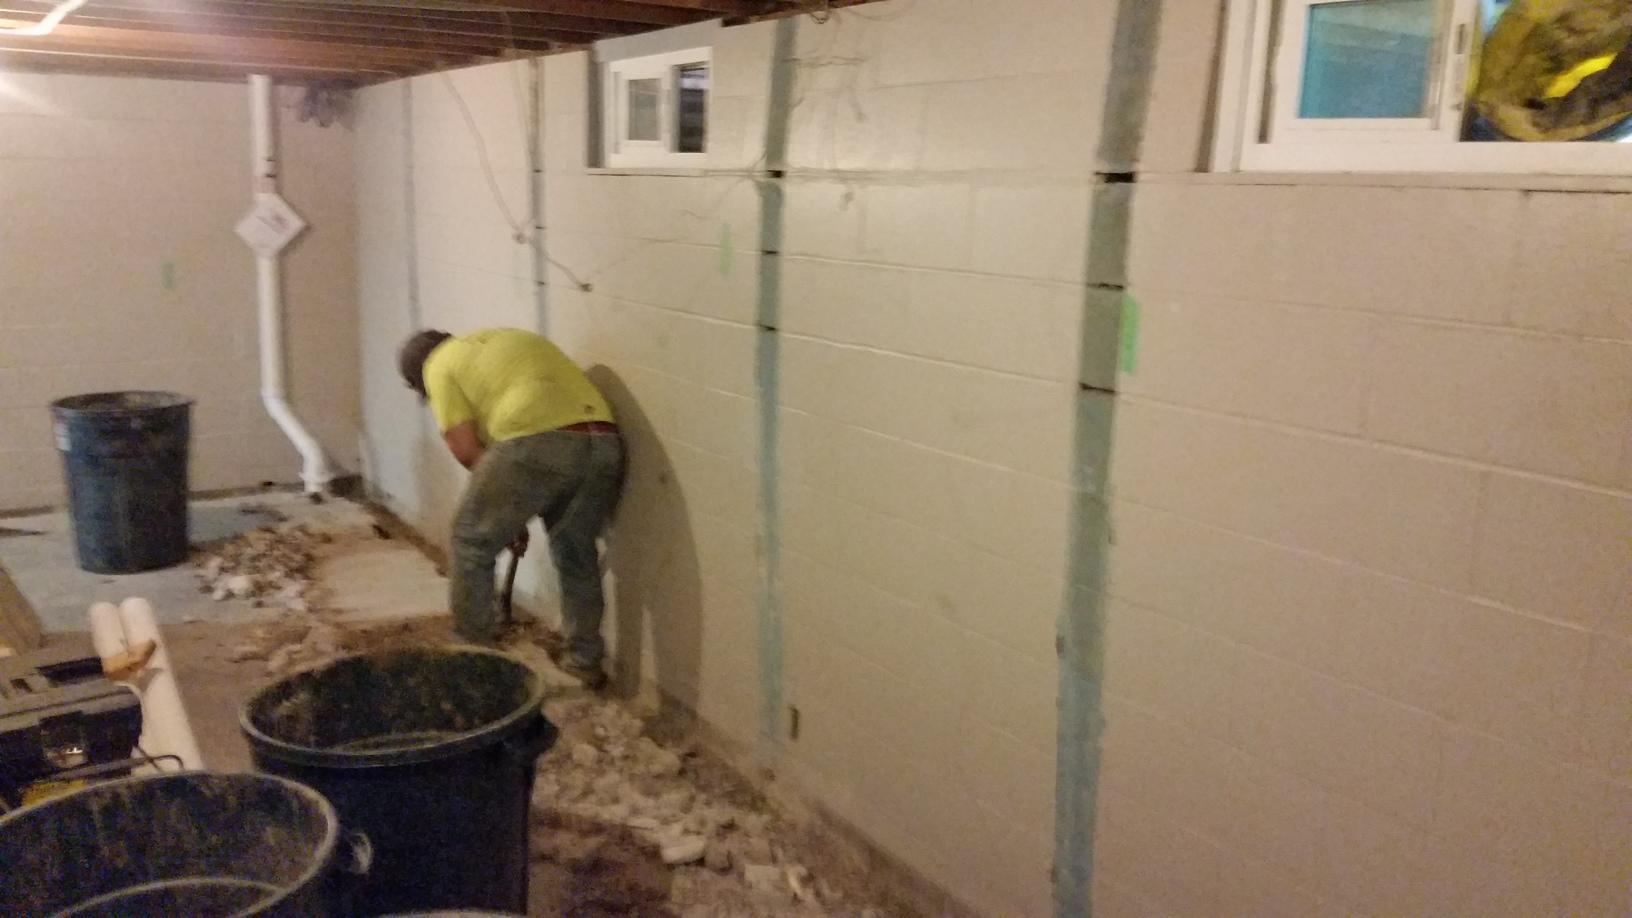 The basement walls were bulging and needed to be addressed as soon as possible so that they would not get worse.